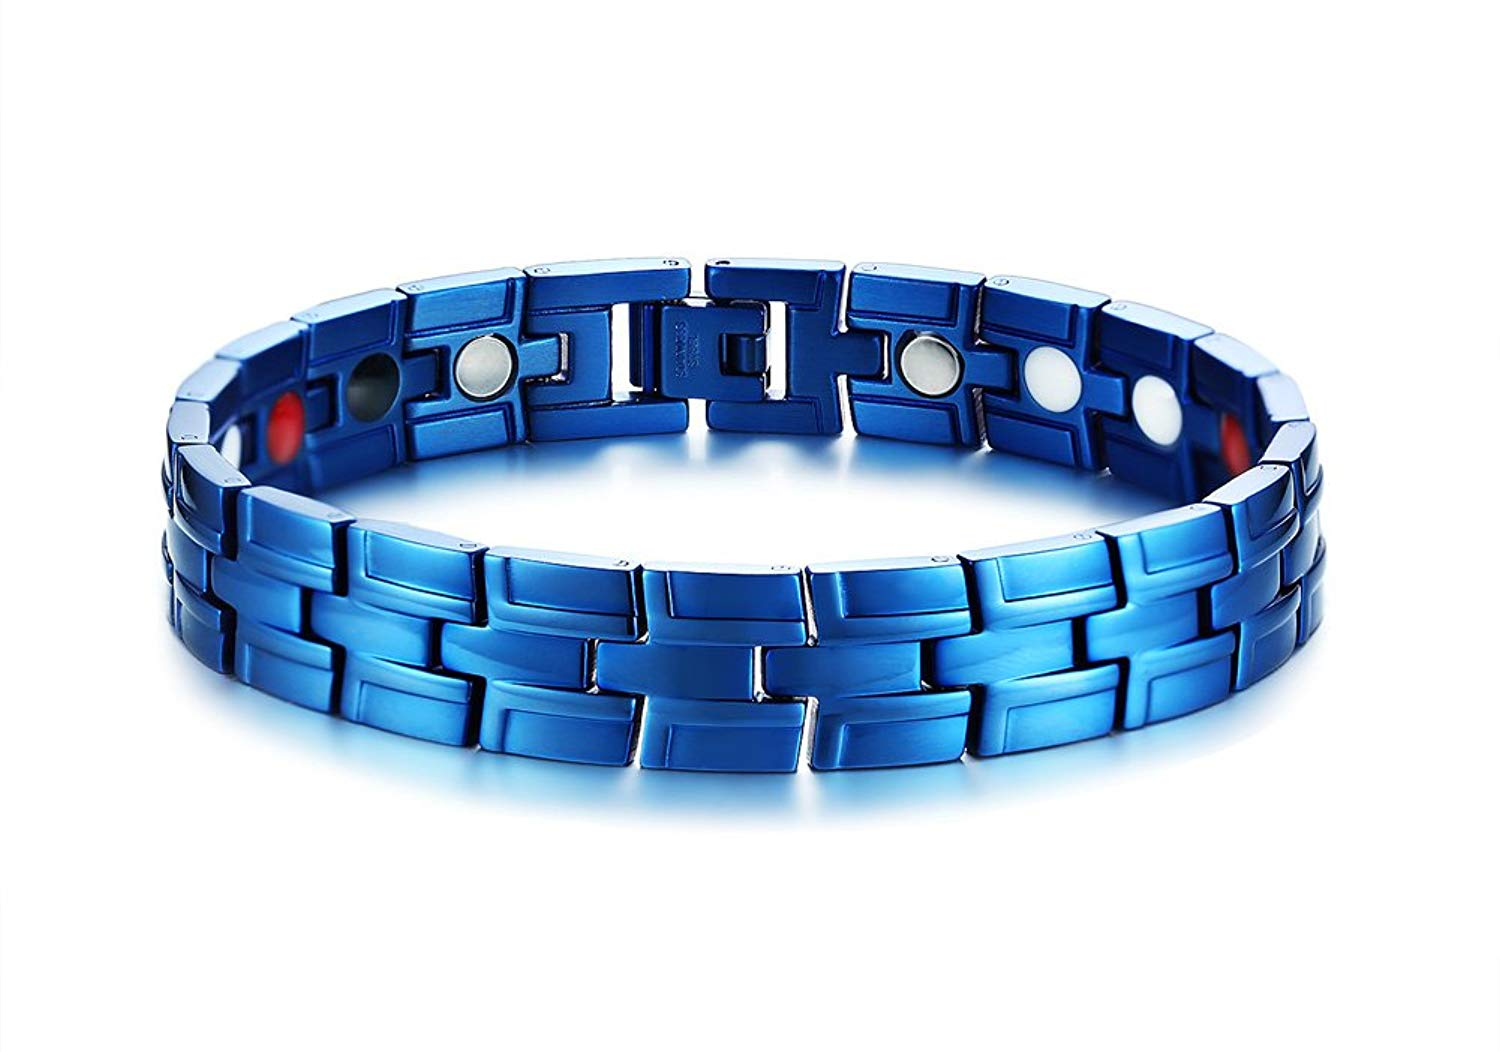 MPRAINBOW Men's Stainless Steel Healthy Body 4 in 1 Magnetic Therapy Healing Masonic Bracelet Blue 22cm